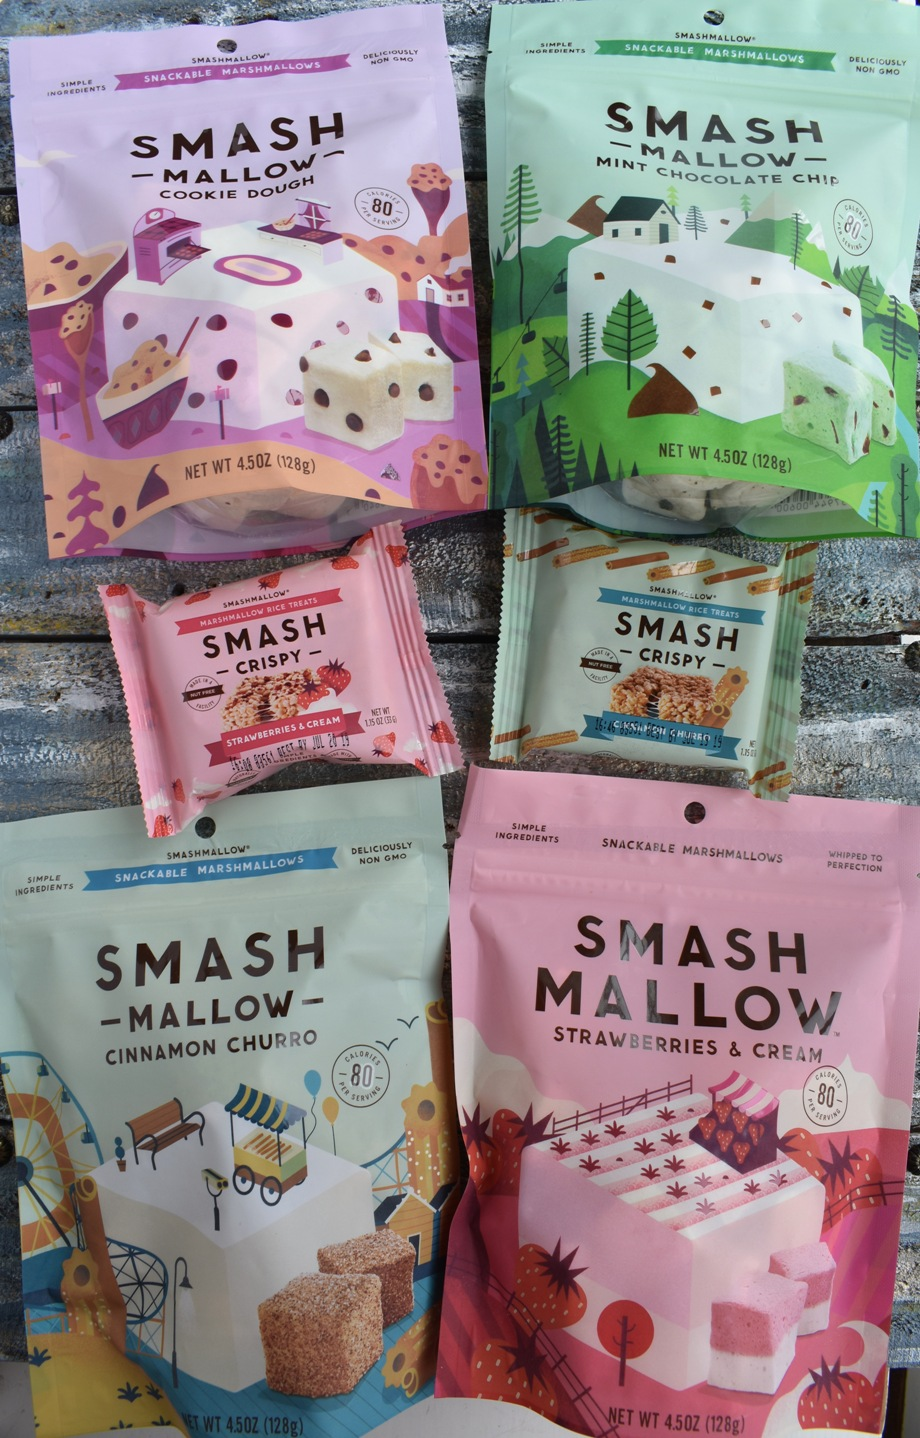 SMASHMALLOW Marshmallows and Marshmallow Crispy Treats